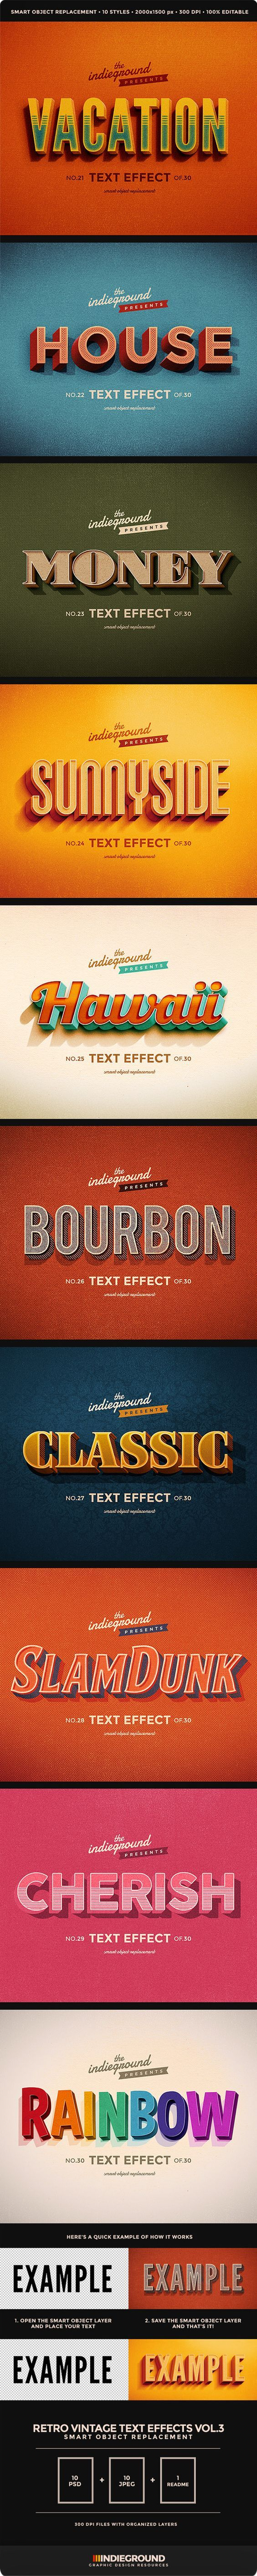 Retro Vintage Text Effects Vol. 3 - Text Effects Actions - these are all beautiful: